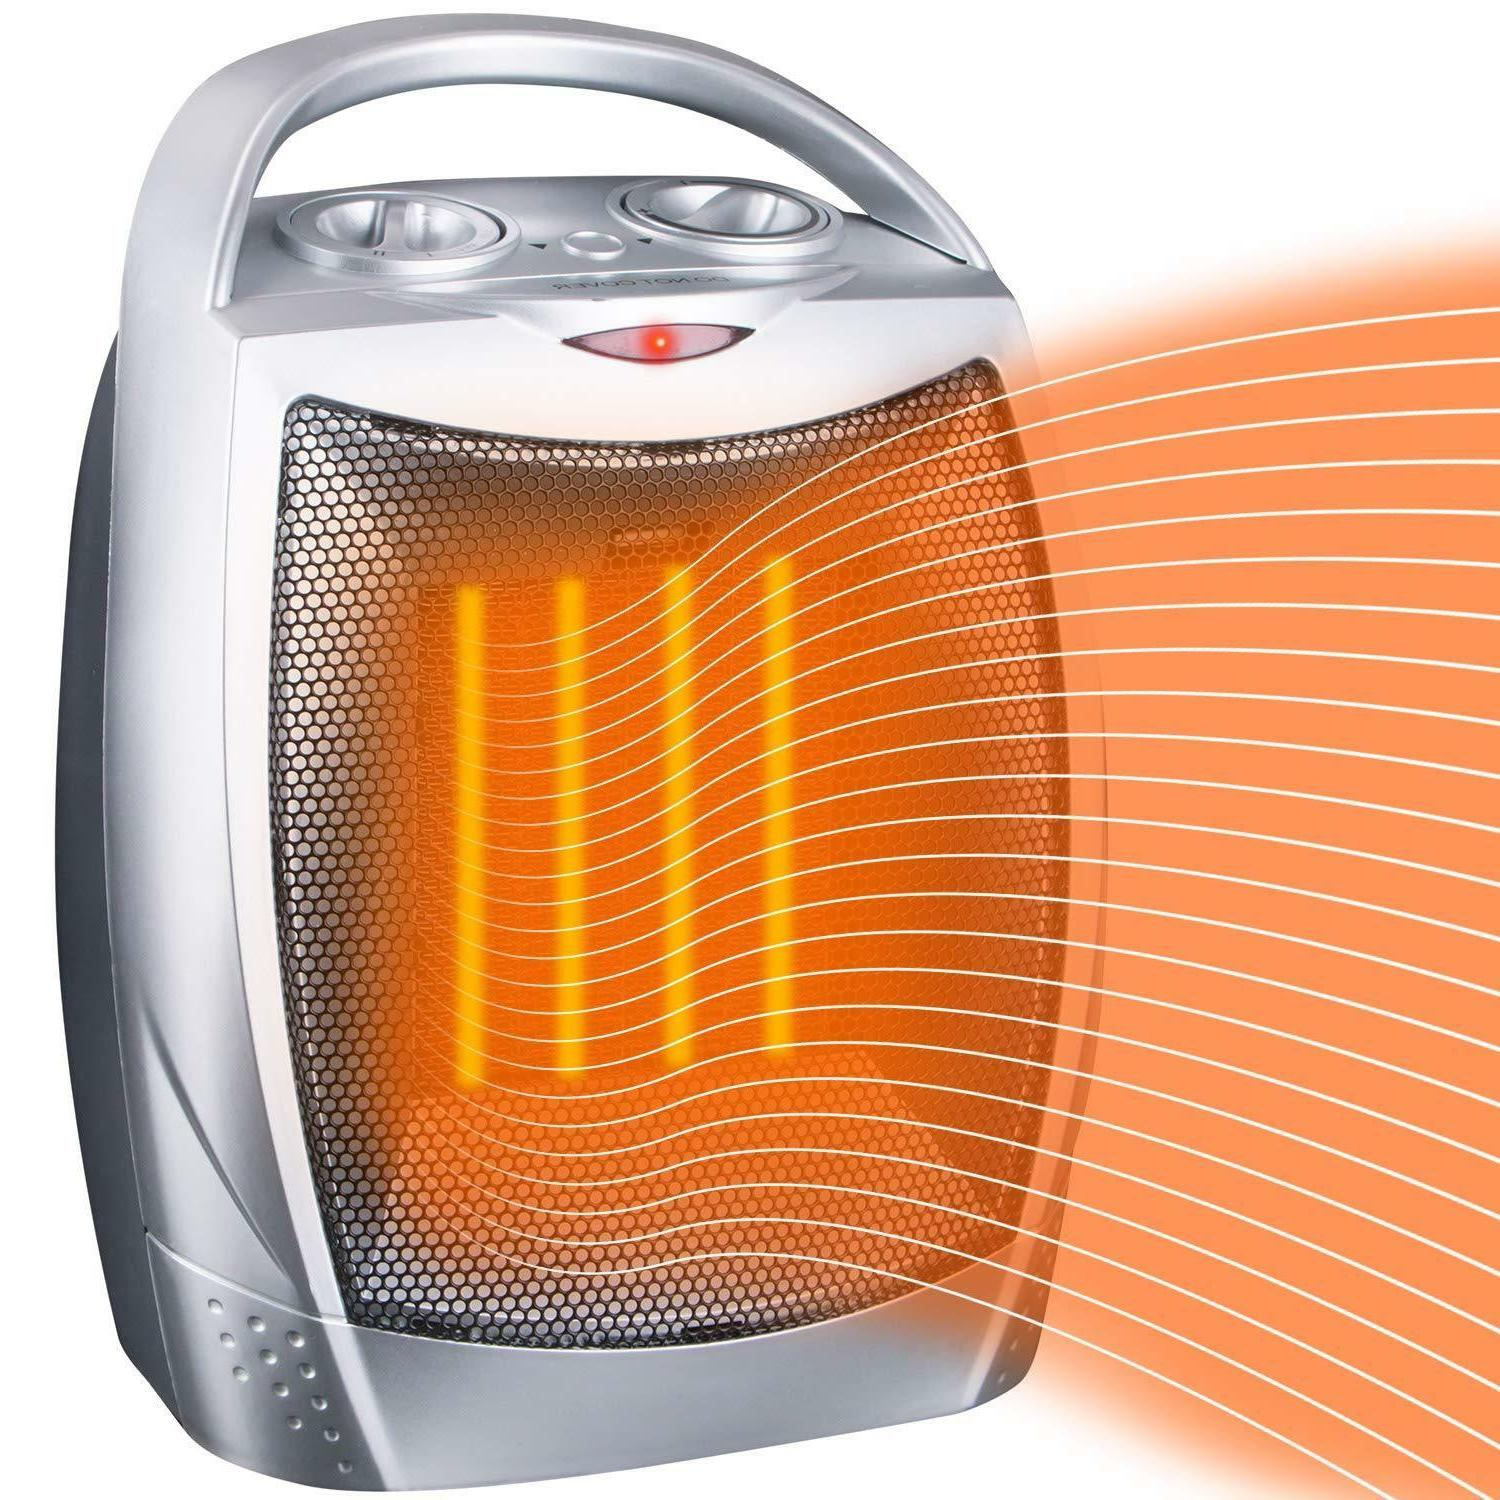 space heater electric heater portable office dorm